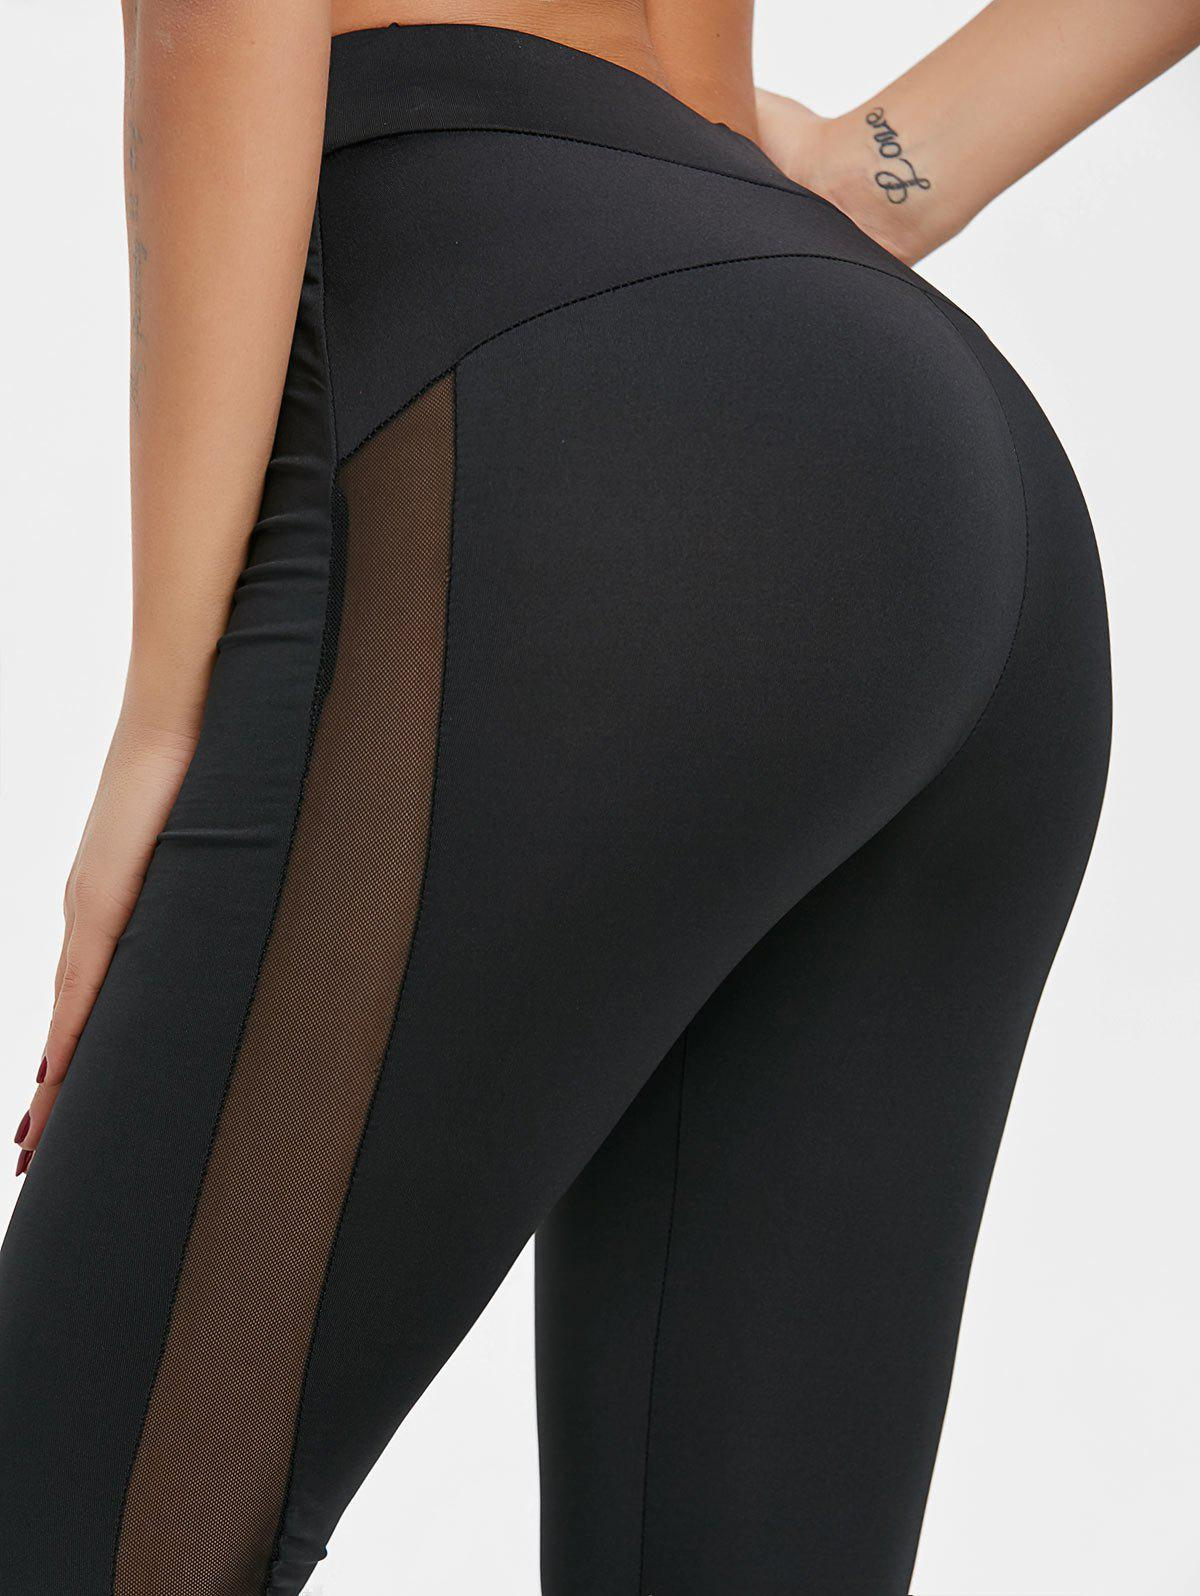 High Waisted Sheer Mesh Insert Yoga Pants - BLACK XL